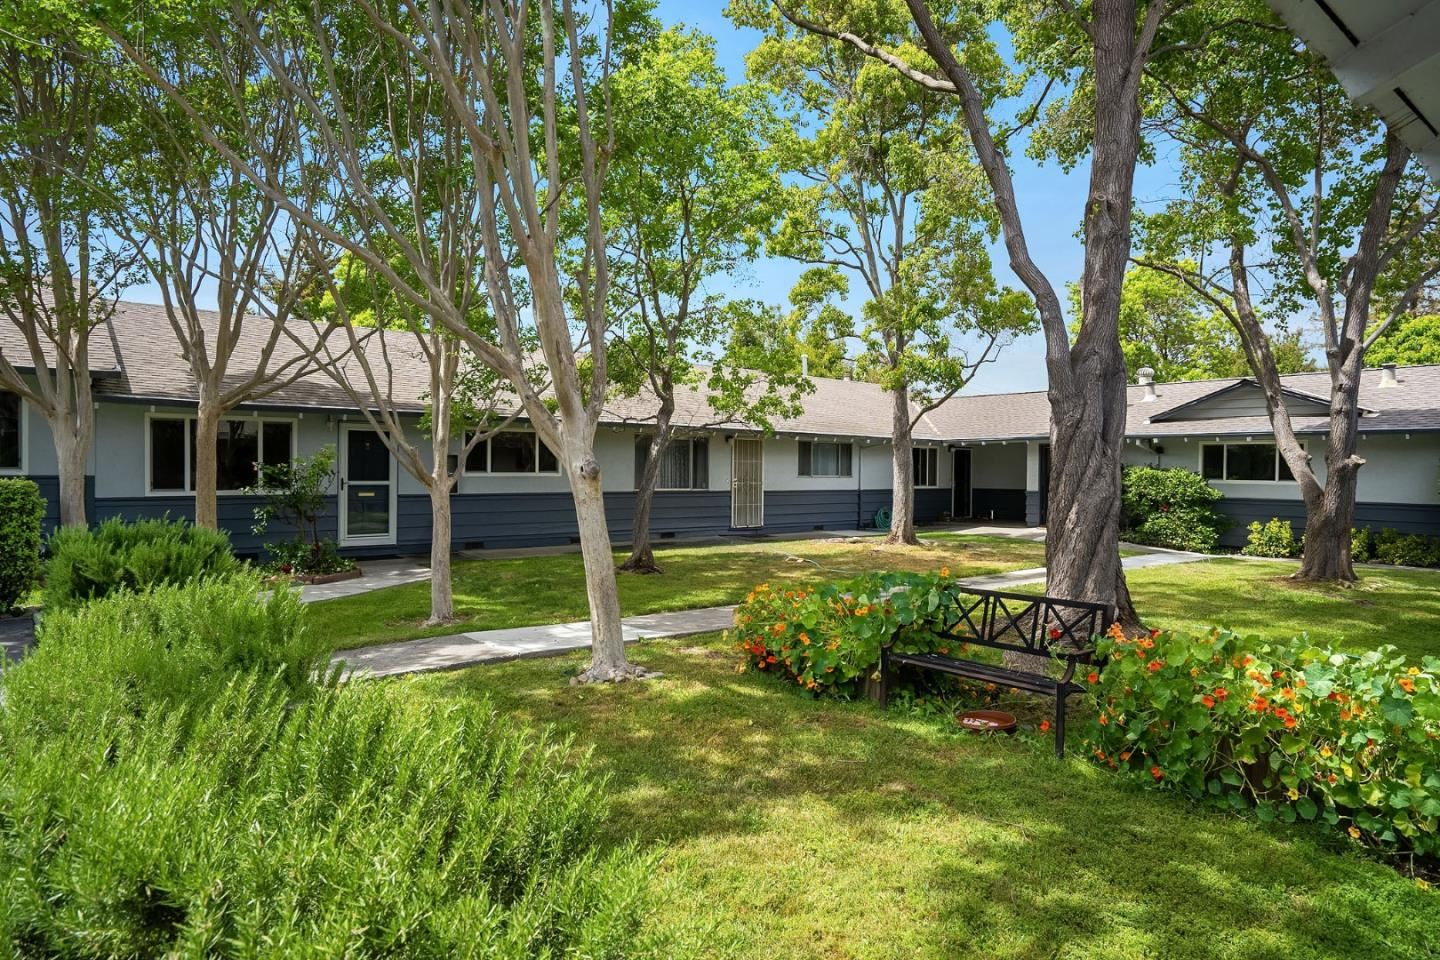 564 Annie Laurie ST 3 #3, Mountain View, CA 94043 - #: ML81792450